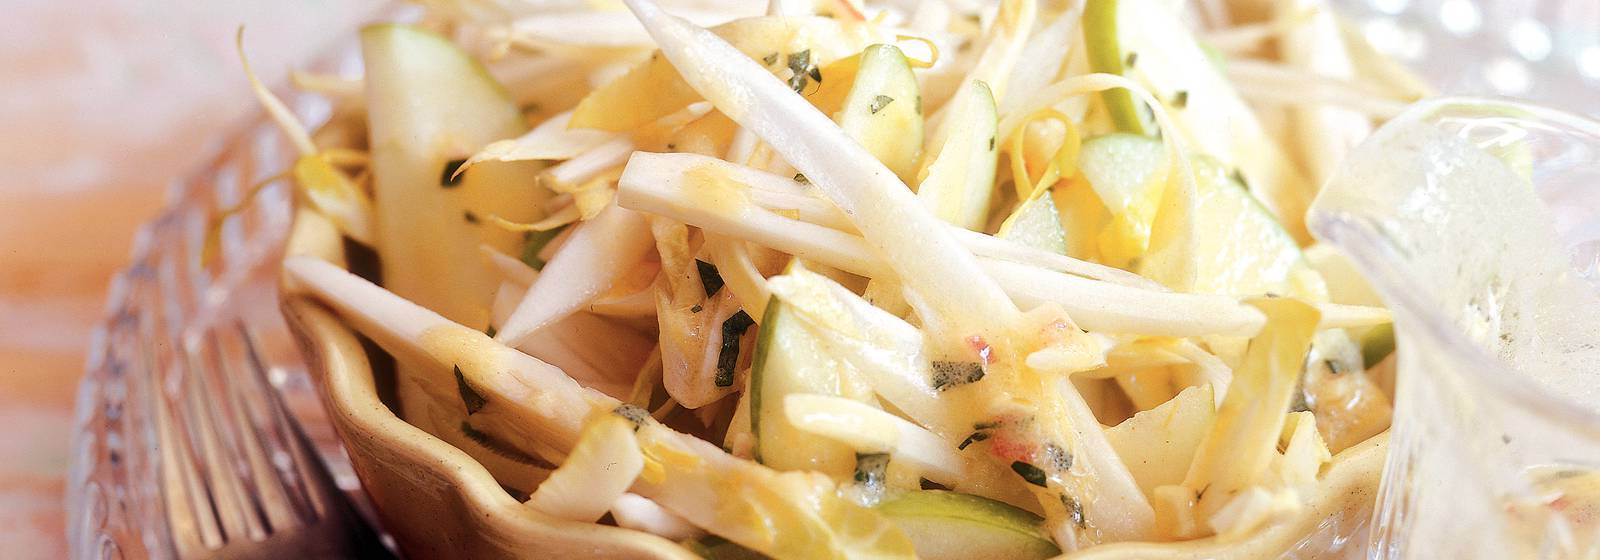 Chicory salad with parsley dressing